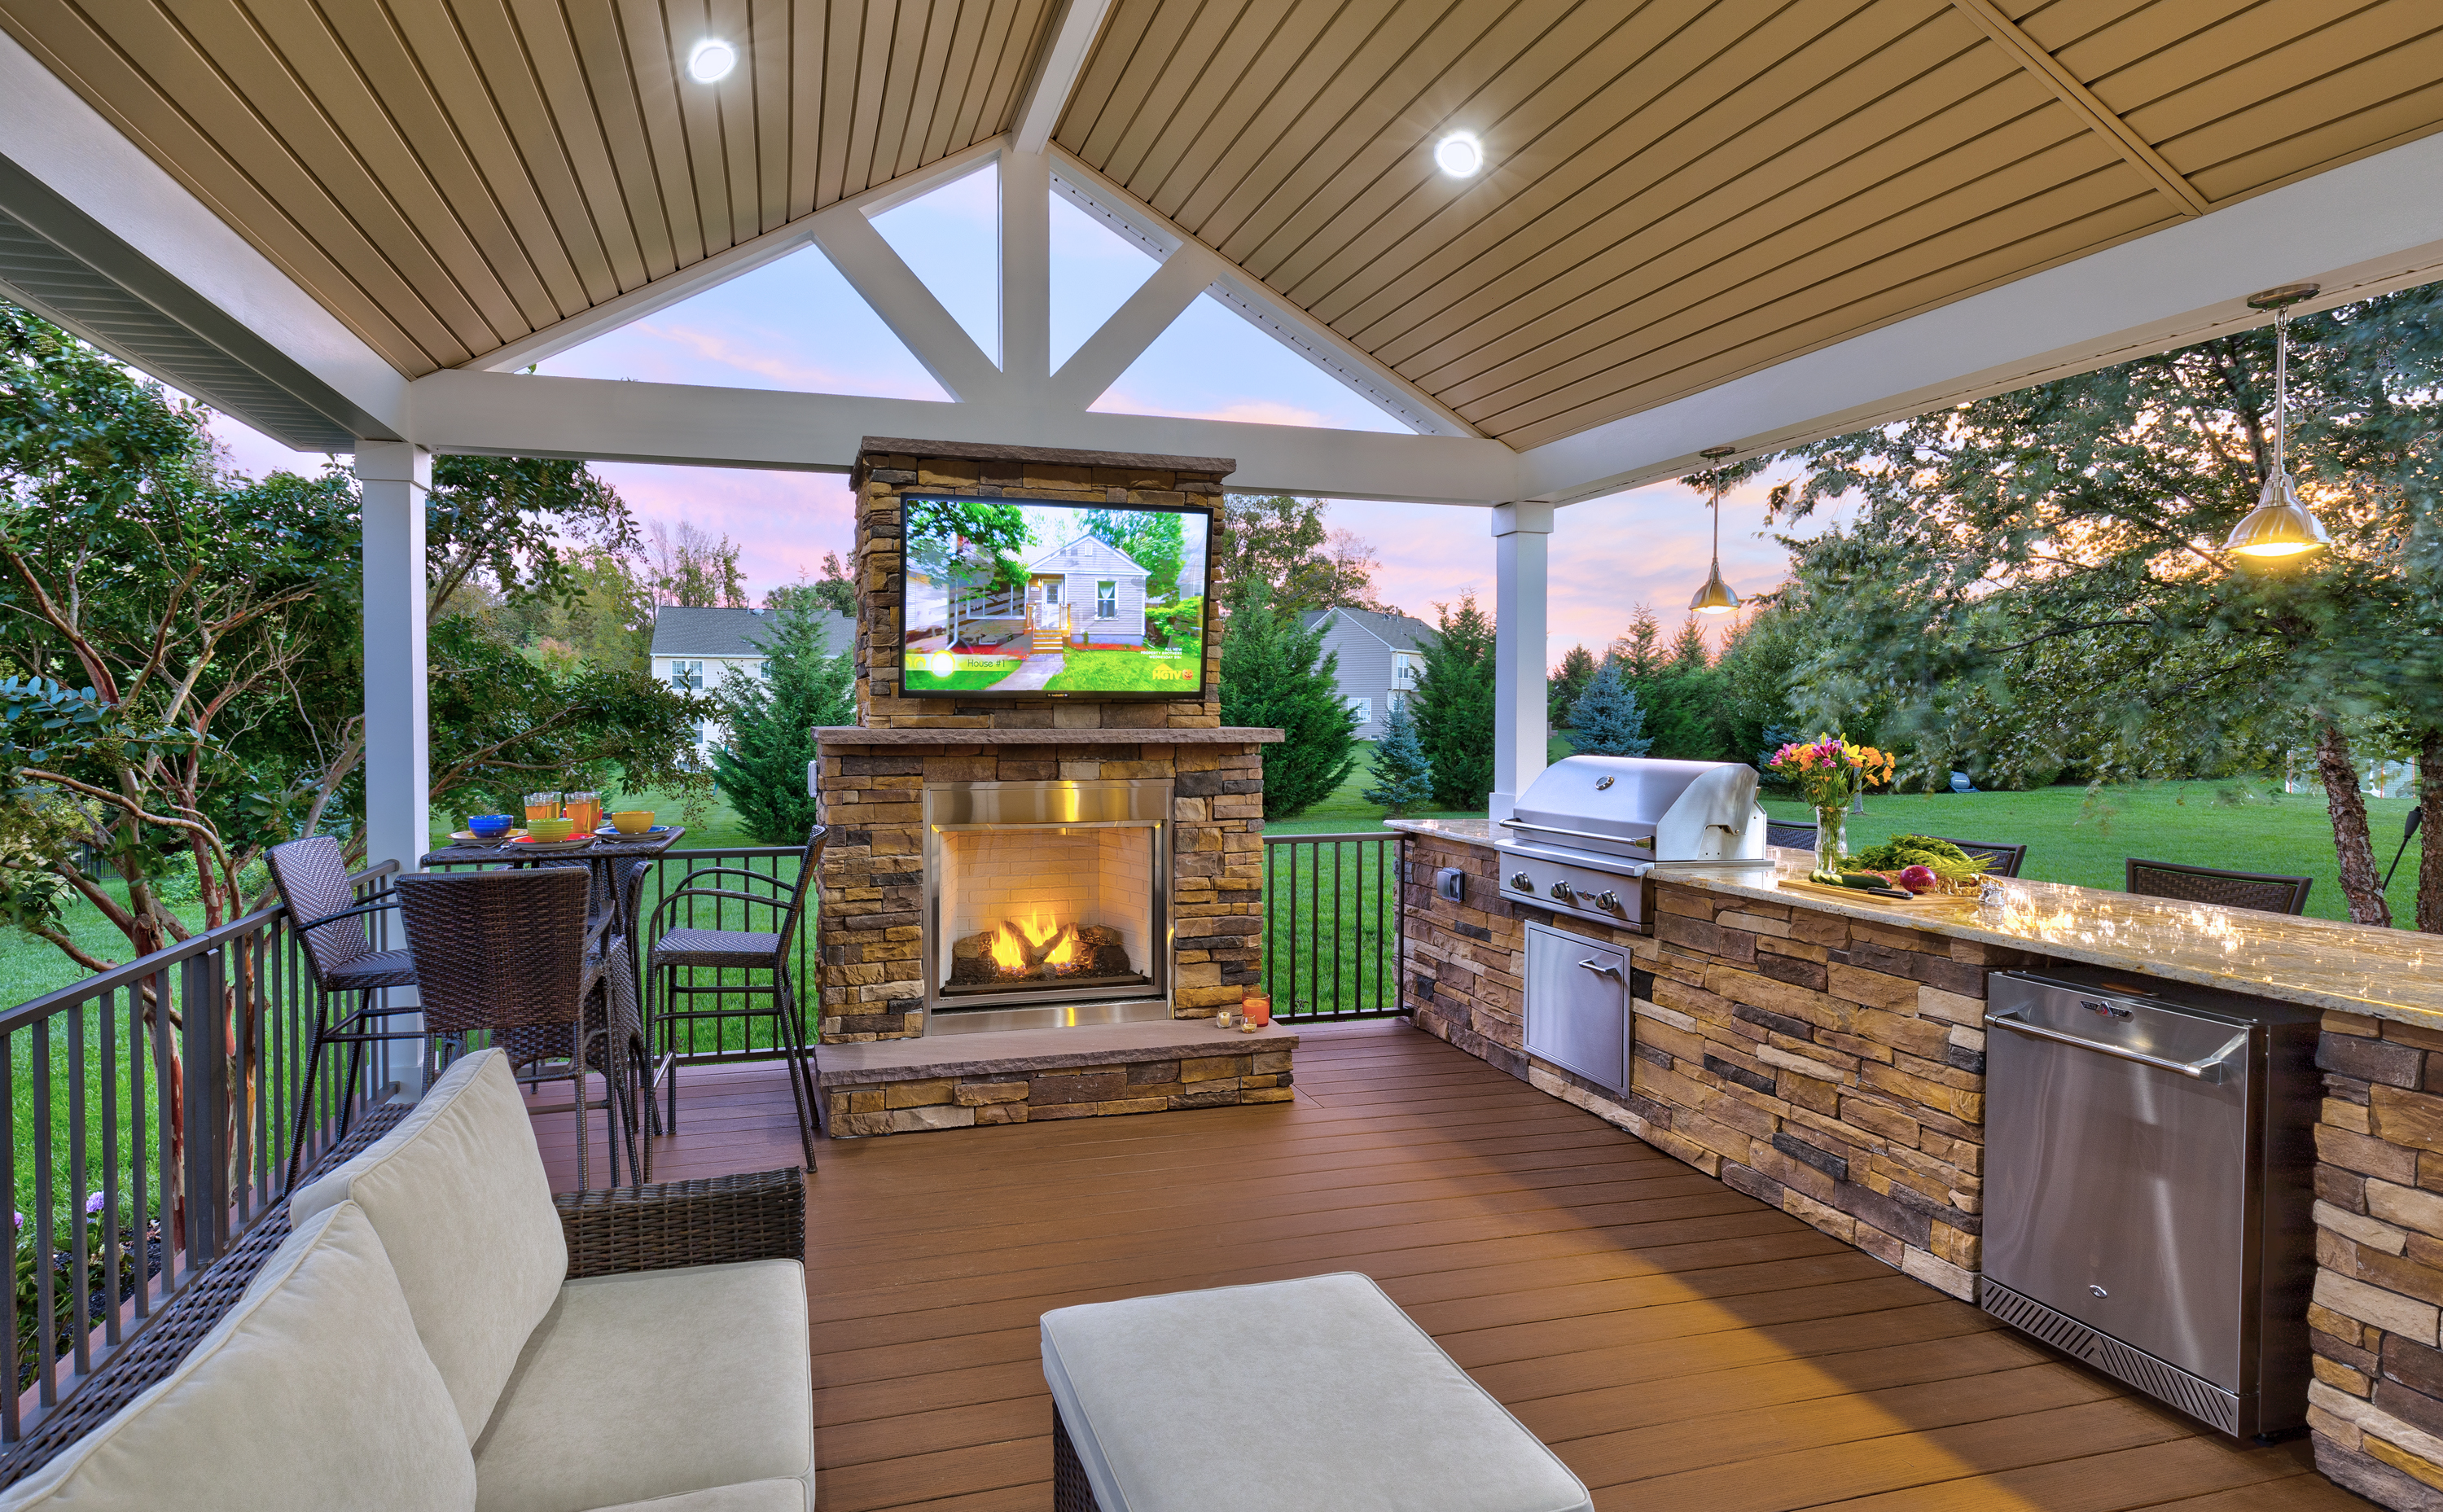 outdoor kitchen, fireplace, television or sound system